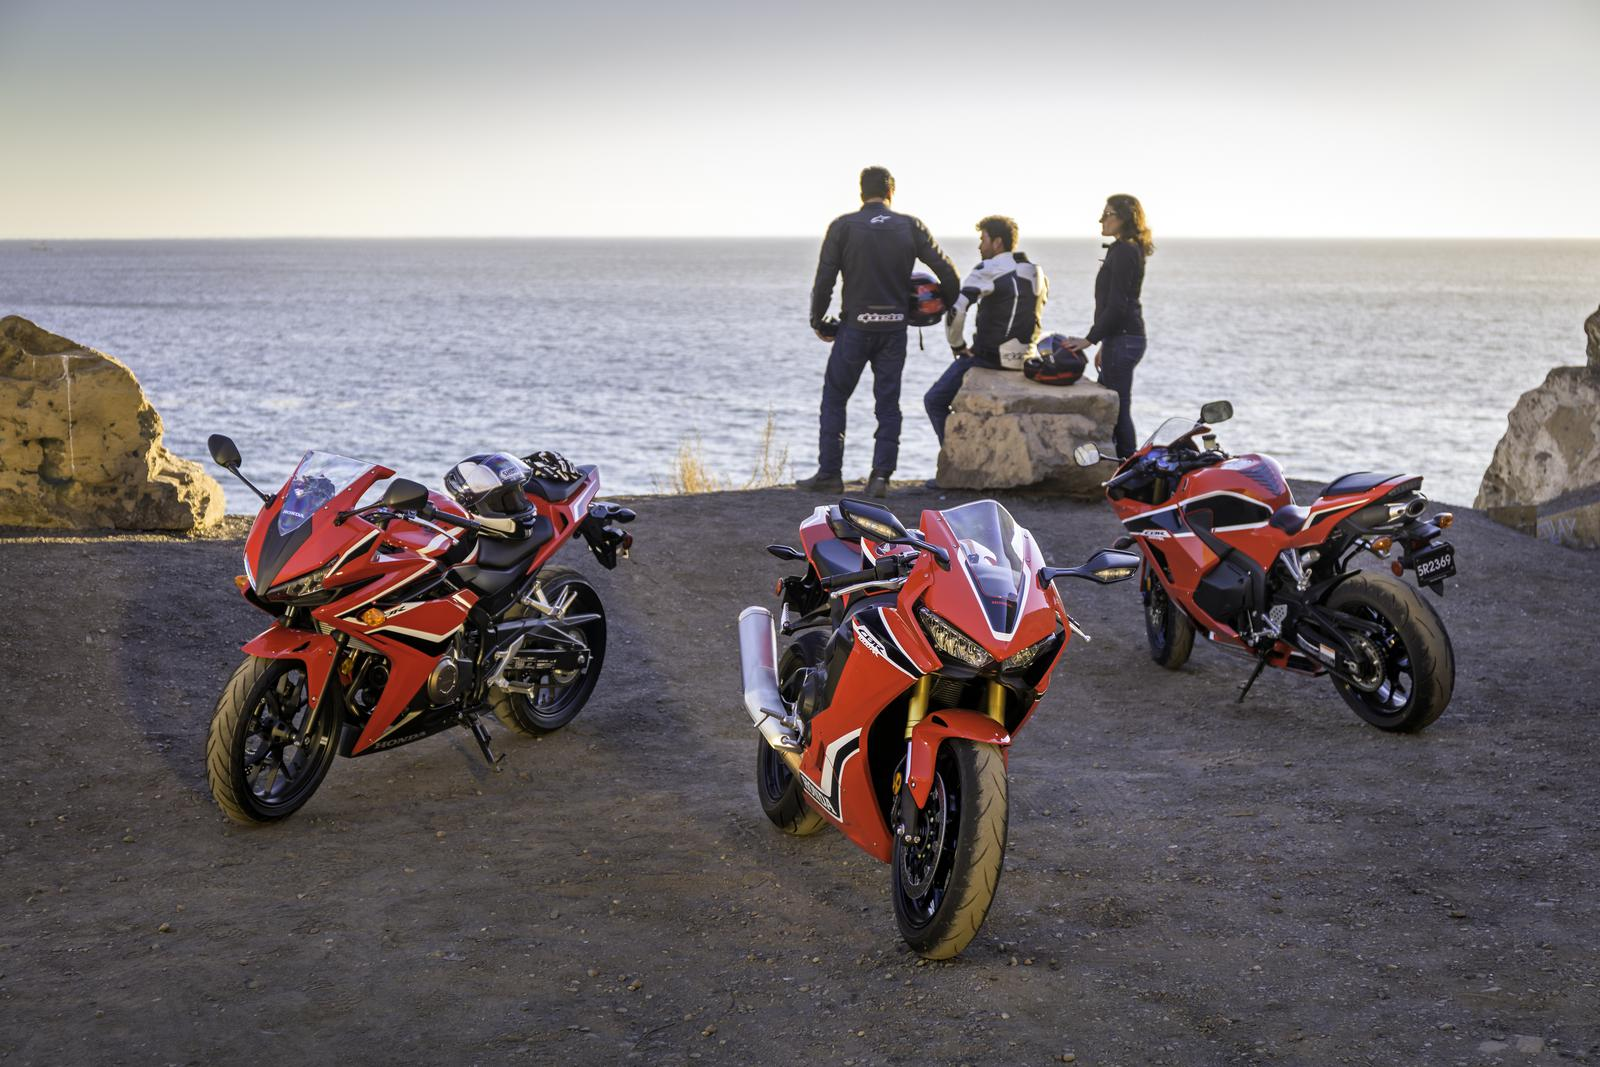 Friends enjoying a view with red Honda Street Bikes